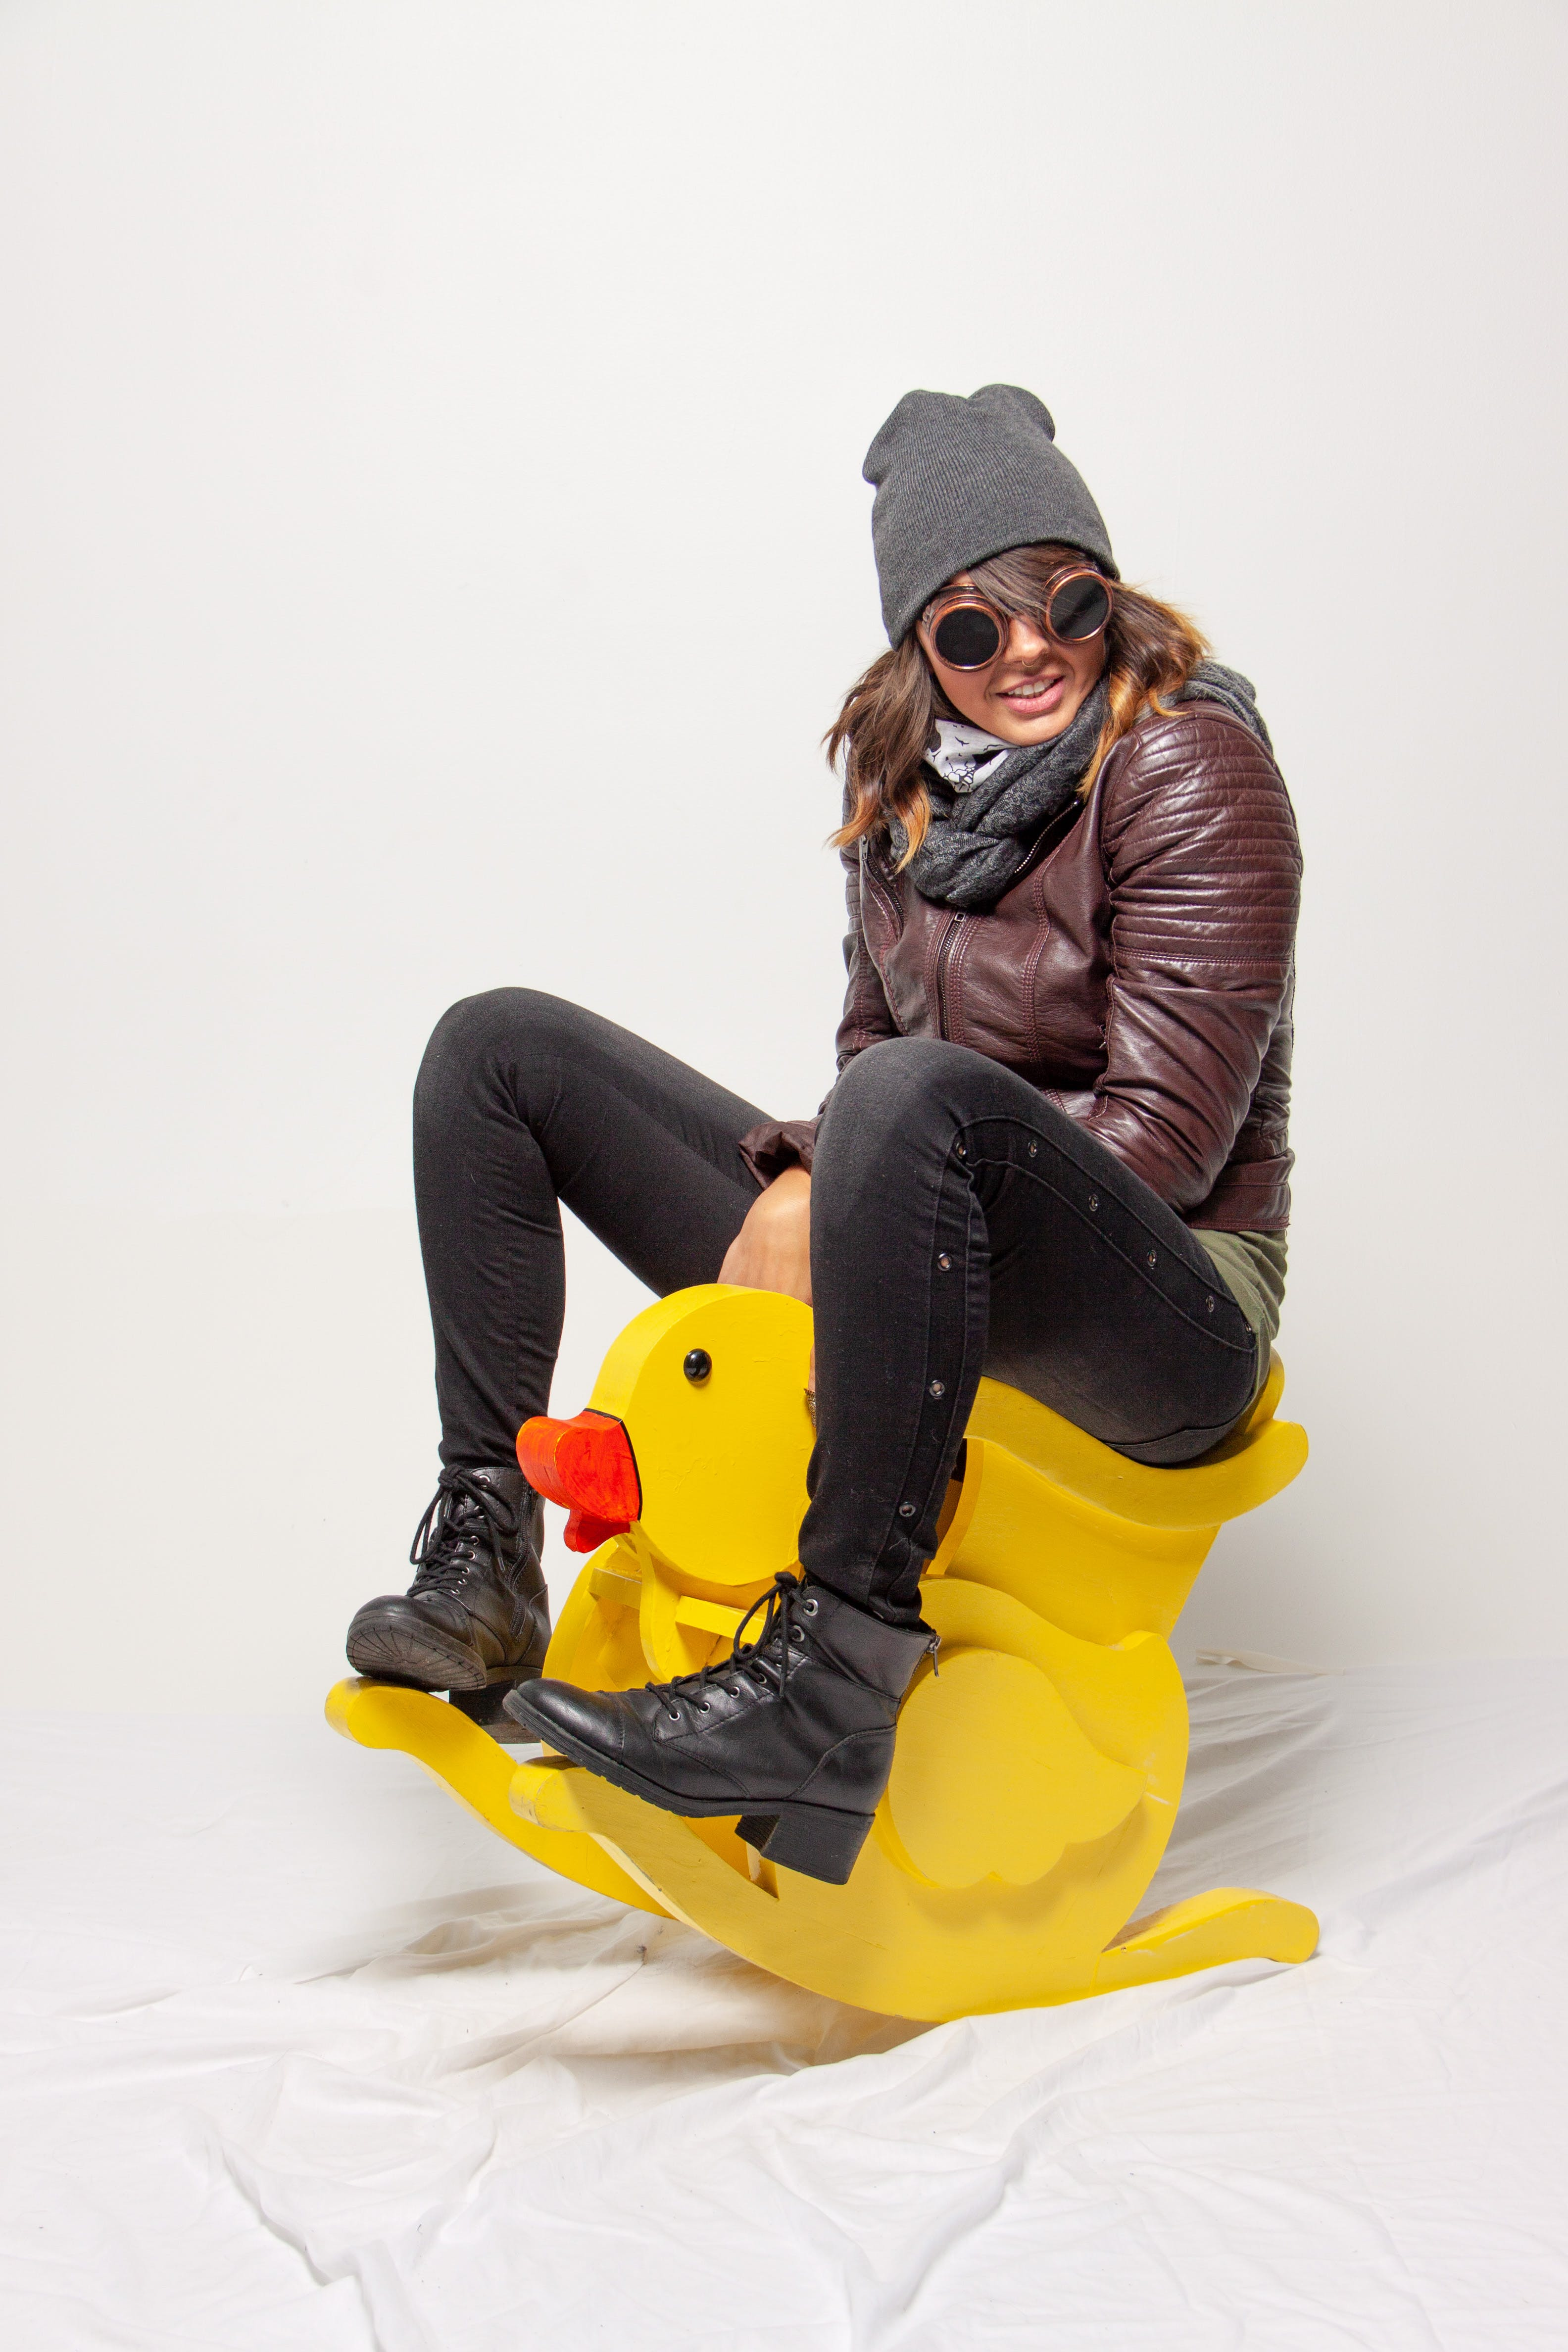 Woman Riding On Yellow Ride On Toy